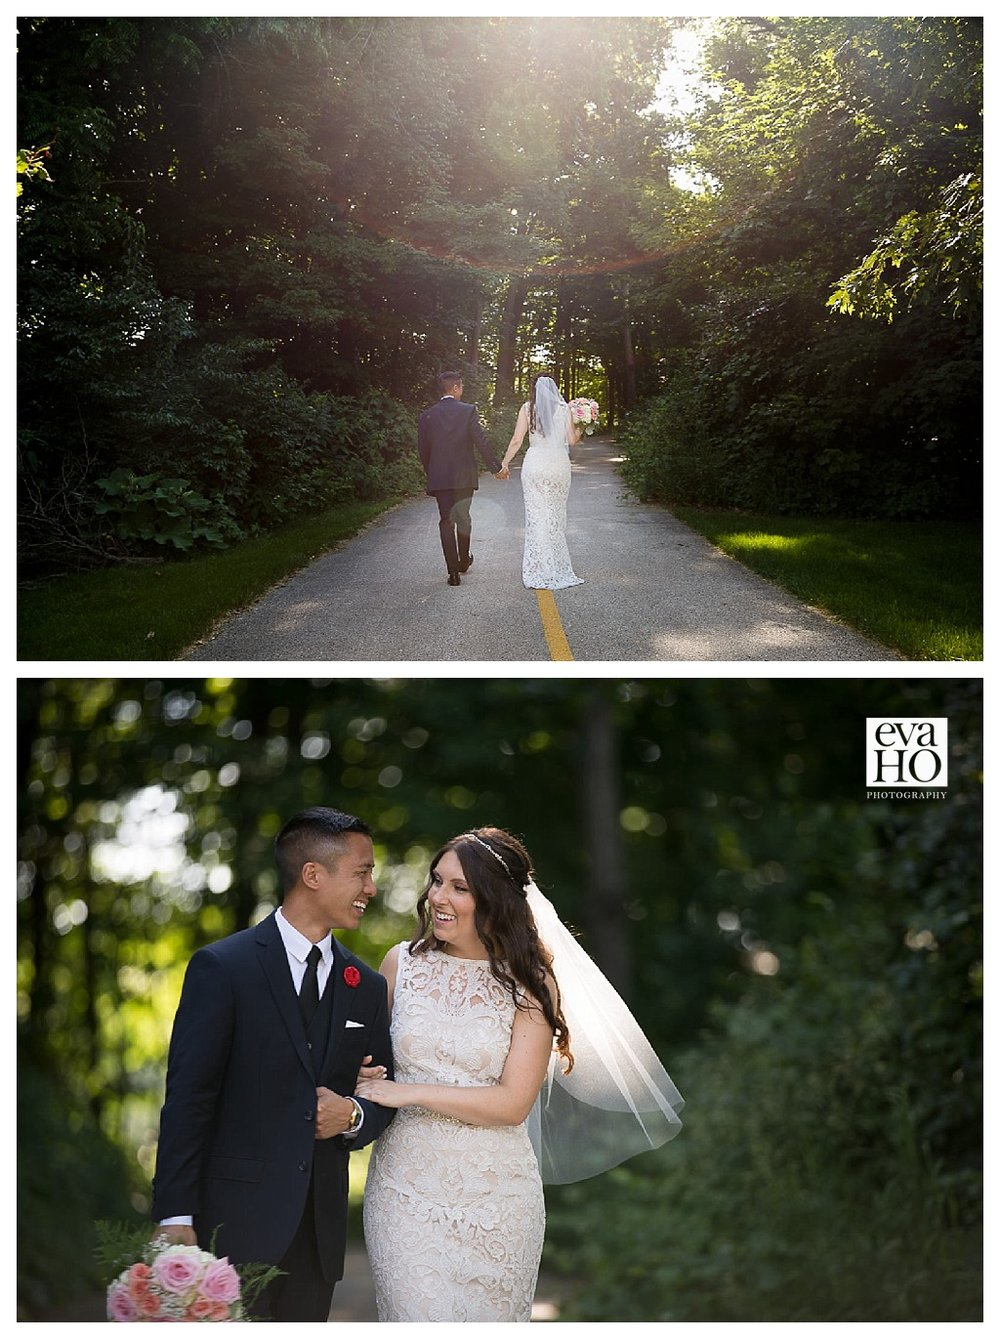 There was no shortage of great shots from their wedding. Independence Grove is always beautiful in the summer time.